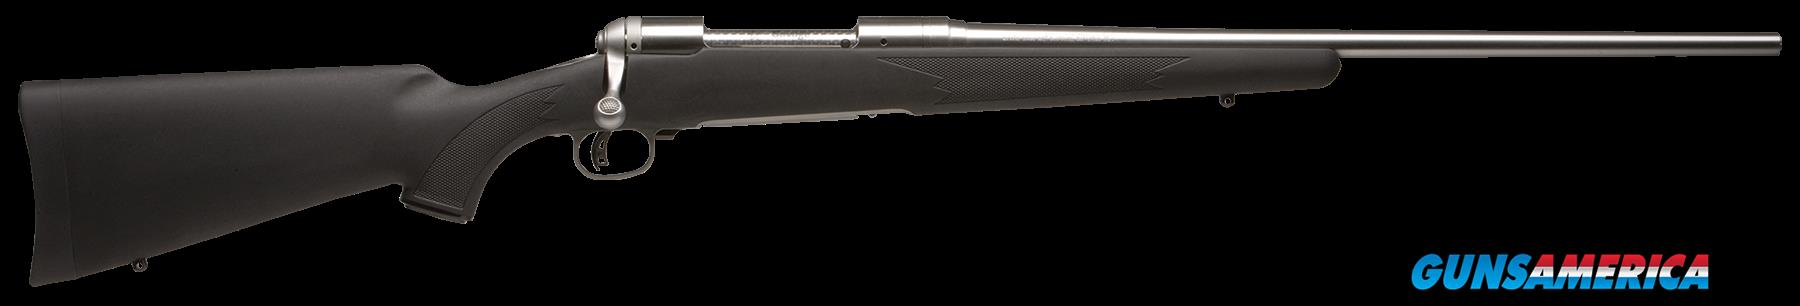 "Savage 17777 16/116 FCSS Bolt 243 Win 22"" 4+1 Accustock Black Stk Stainless Steel  Guns > Rifles > S Misc Rifles"